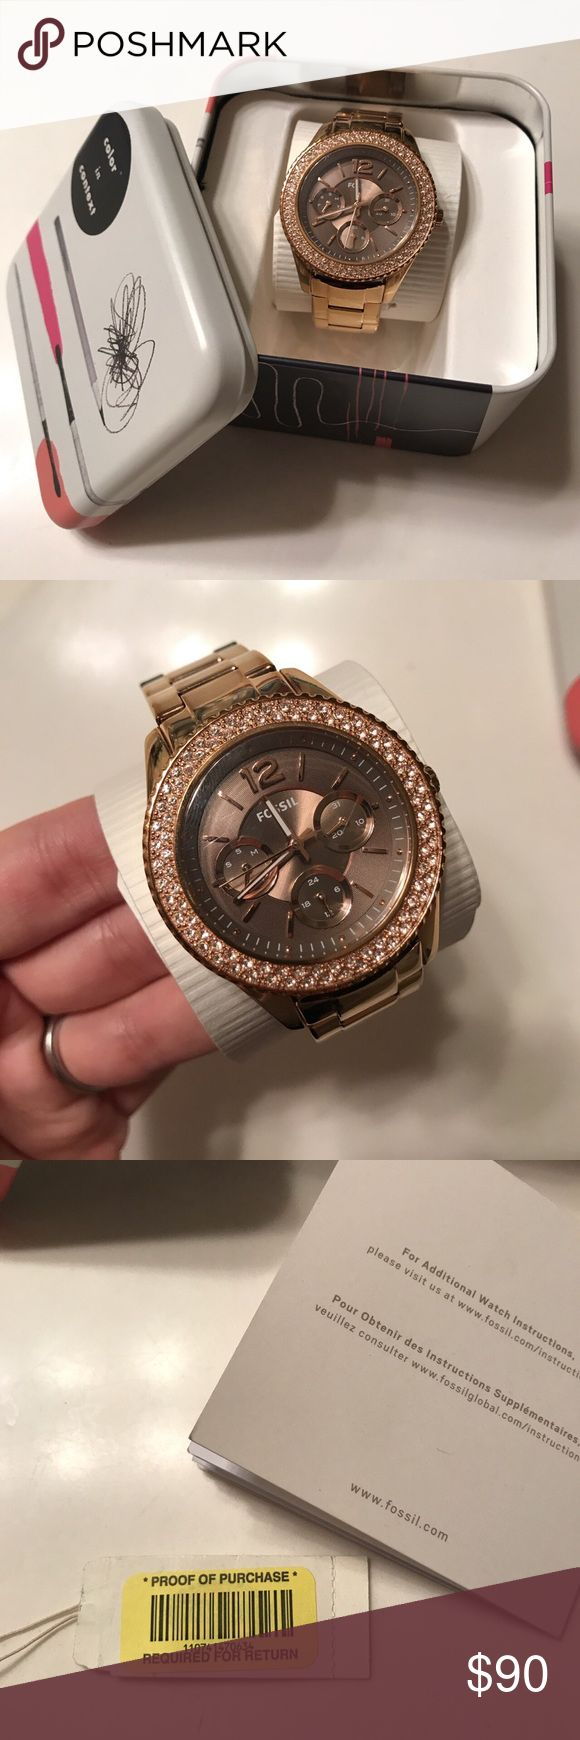 Authentic rose gold Fossil watch. I've had this watch for a little over a year and worn it maybe a few times. Minor wear and tear signs but nothing noticeable. Great condition and fully functional. Selling because I don't wear it enough. Original price $135. Fossil Accessories Watches